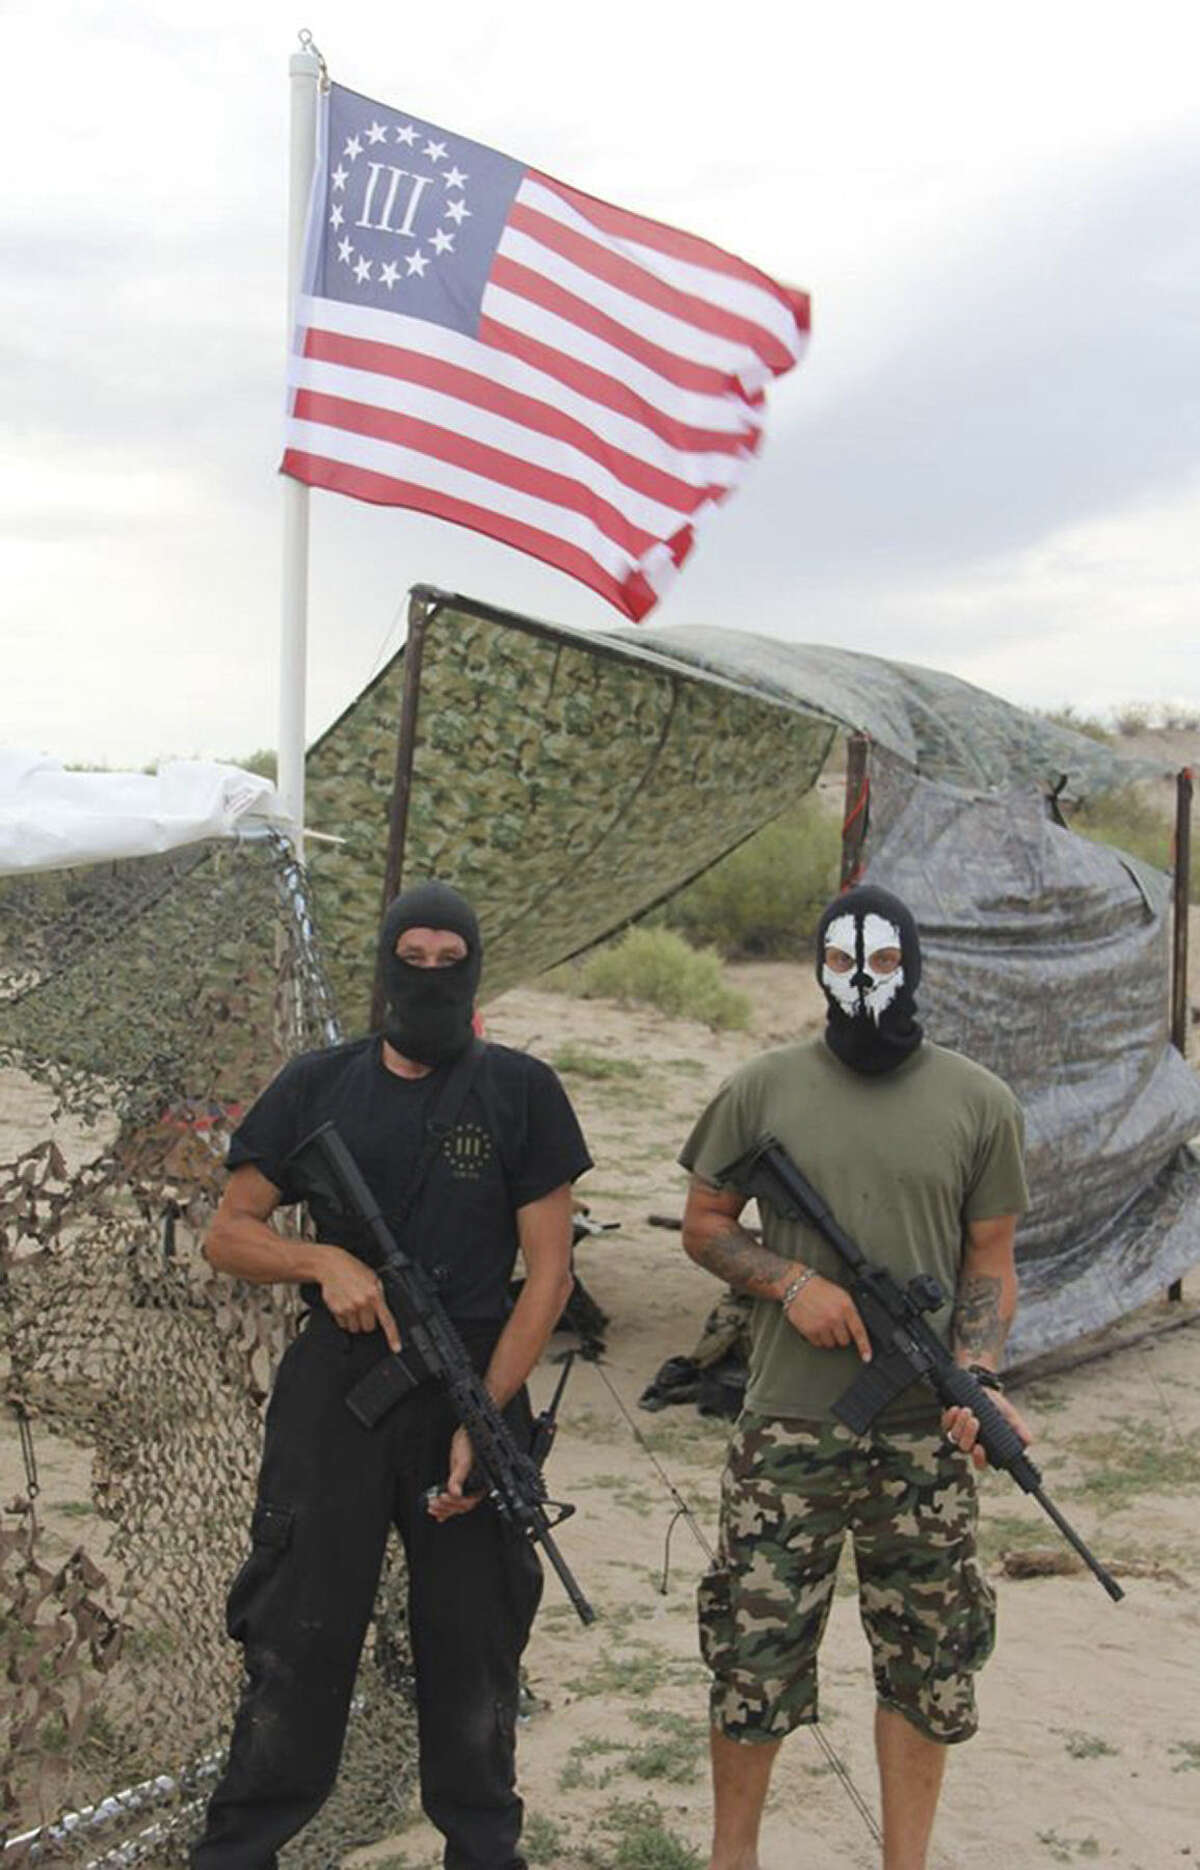 In the wake of the latest surge of immigrants, militia groups on the U.S.-Mexico border carry semi-automatic rifles while wearing masks, camouflage and tactical gear. A reader questions why such groups are necessary.